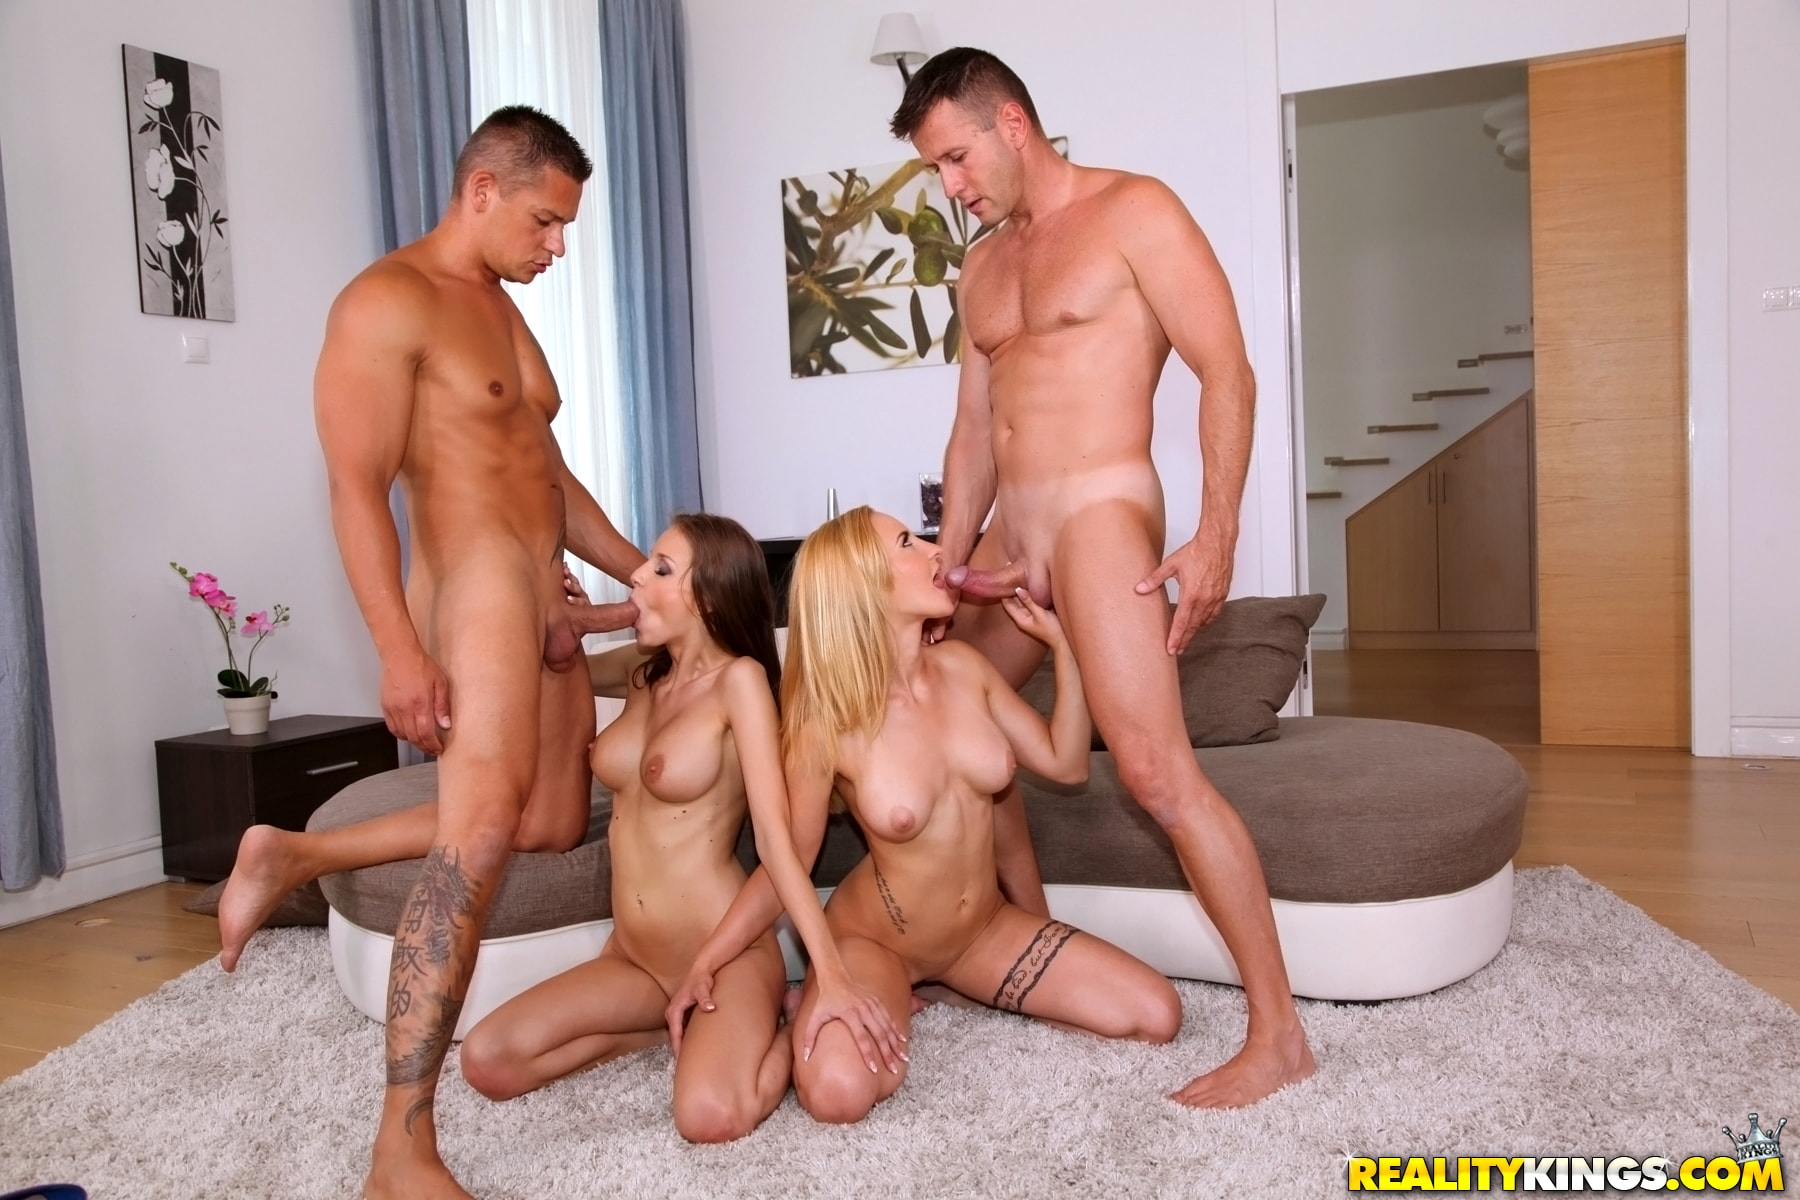 Reality Kings 'Bad but good at it' starring Mary Wet (Photo 454)